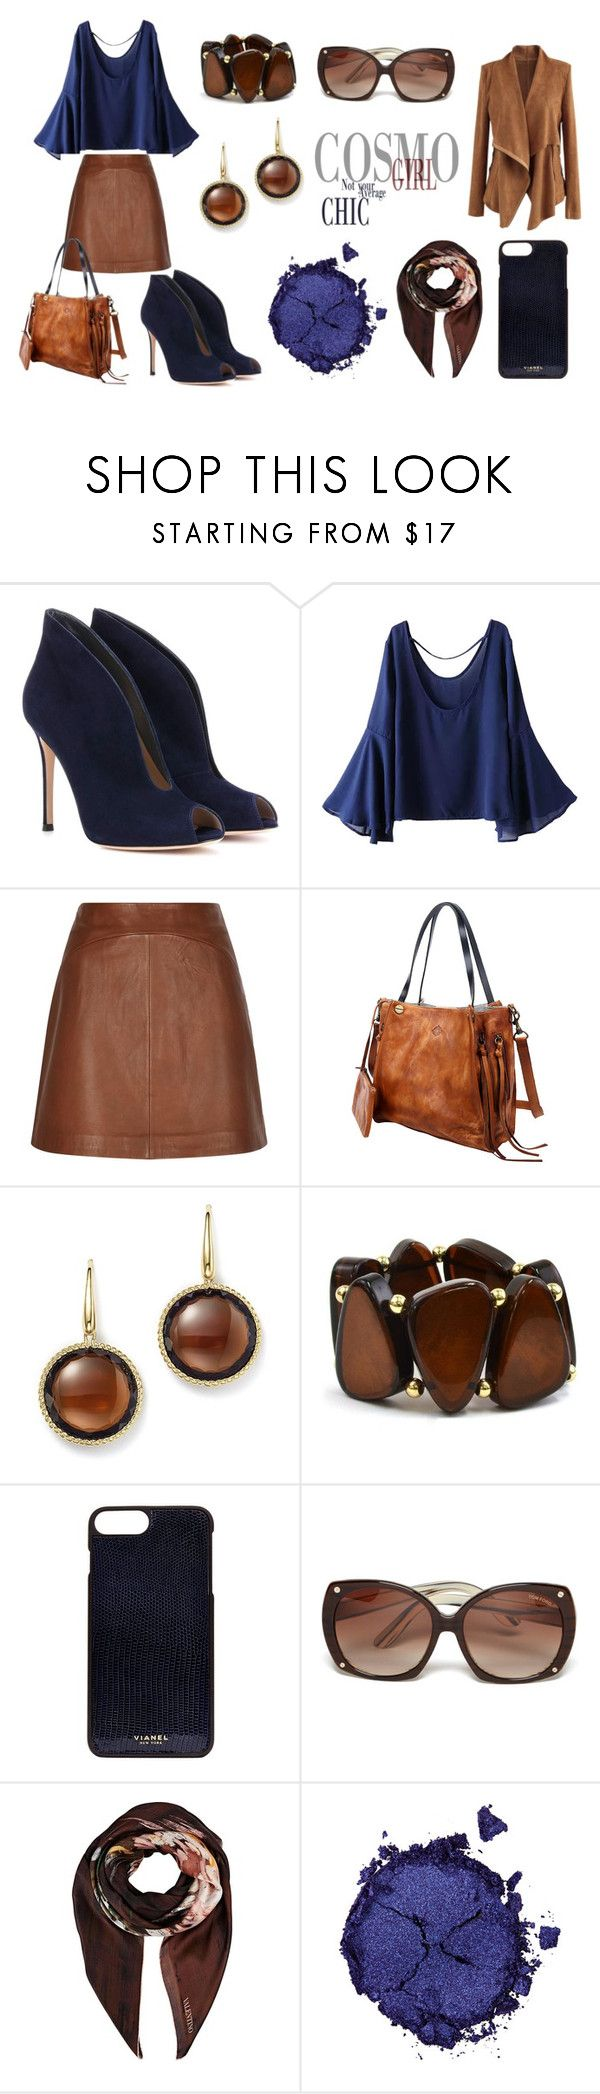 """automne"" by celine-diaz-1 on Polyvore featuring mode, Gianvito Rossi, WithChic, Reiss, Old Trend, Roberto Coin, Kim Rogers, Vianel, Tom Ford et Valentino"